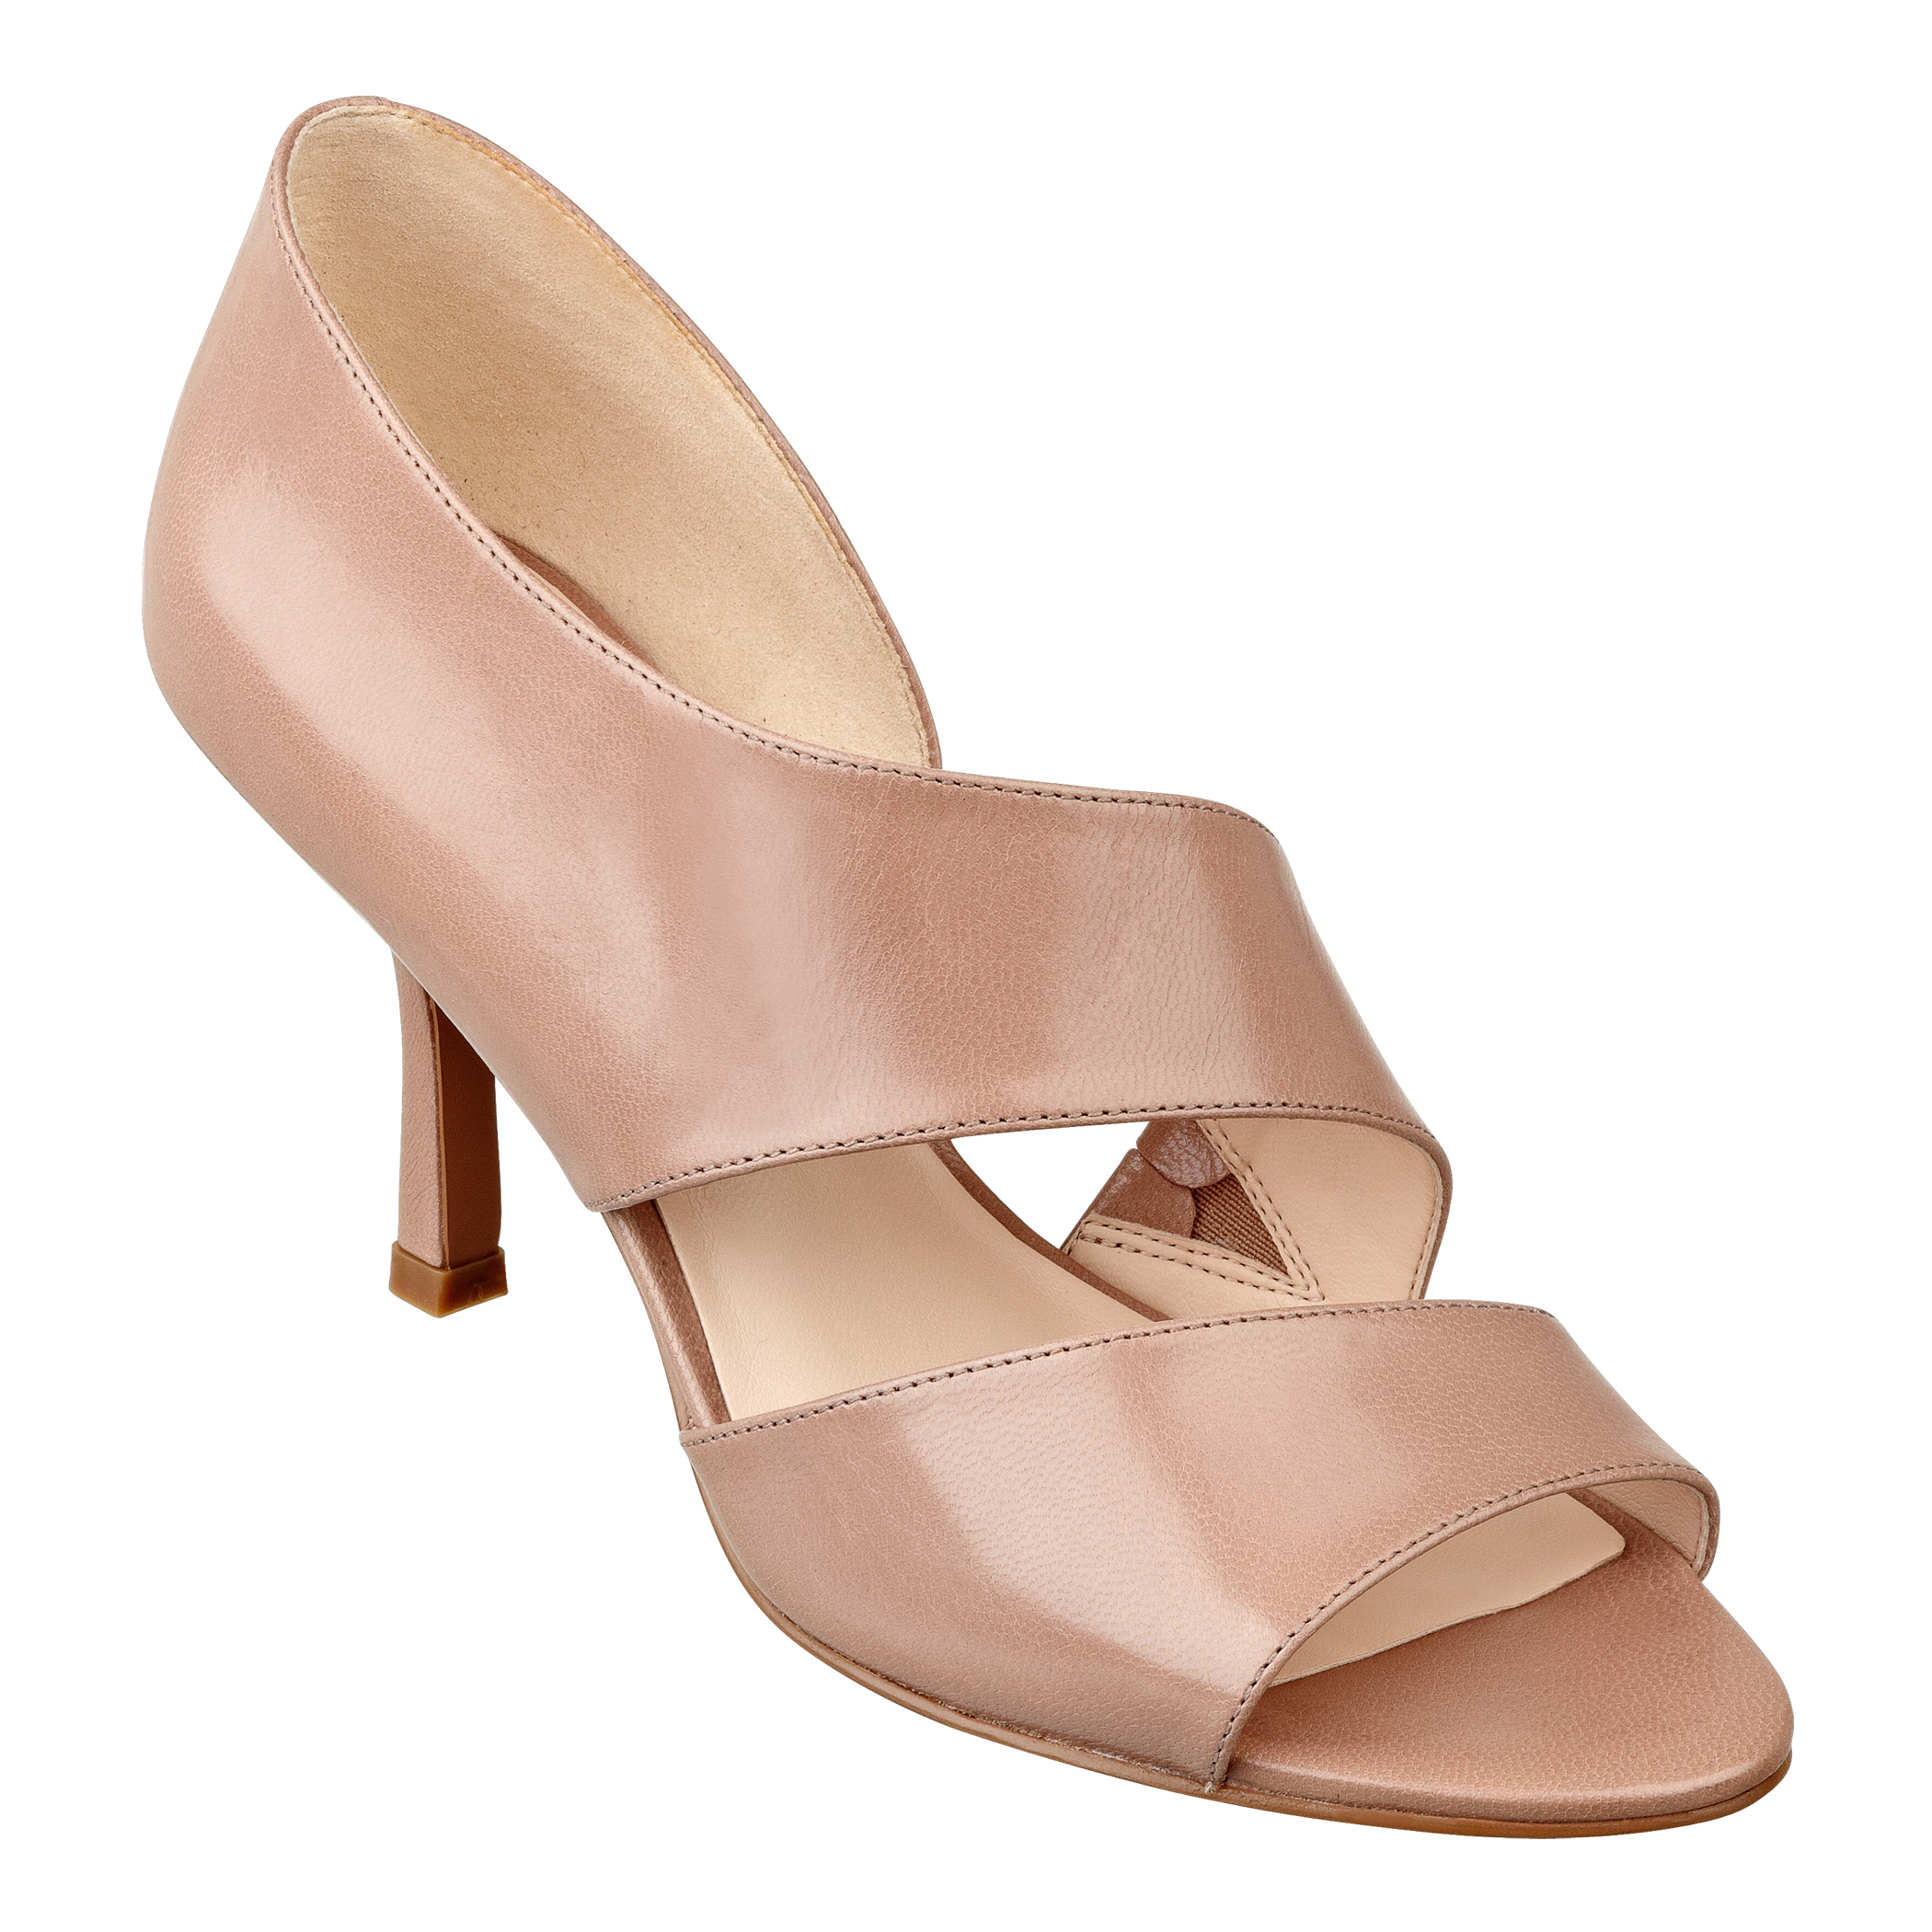 Latest Fashion of Stiletto & Heels Collection for women by Nine West(21)